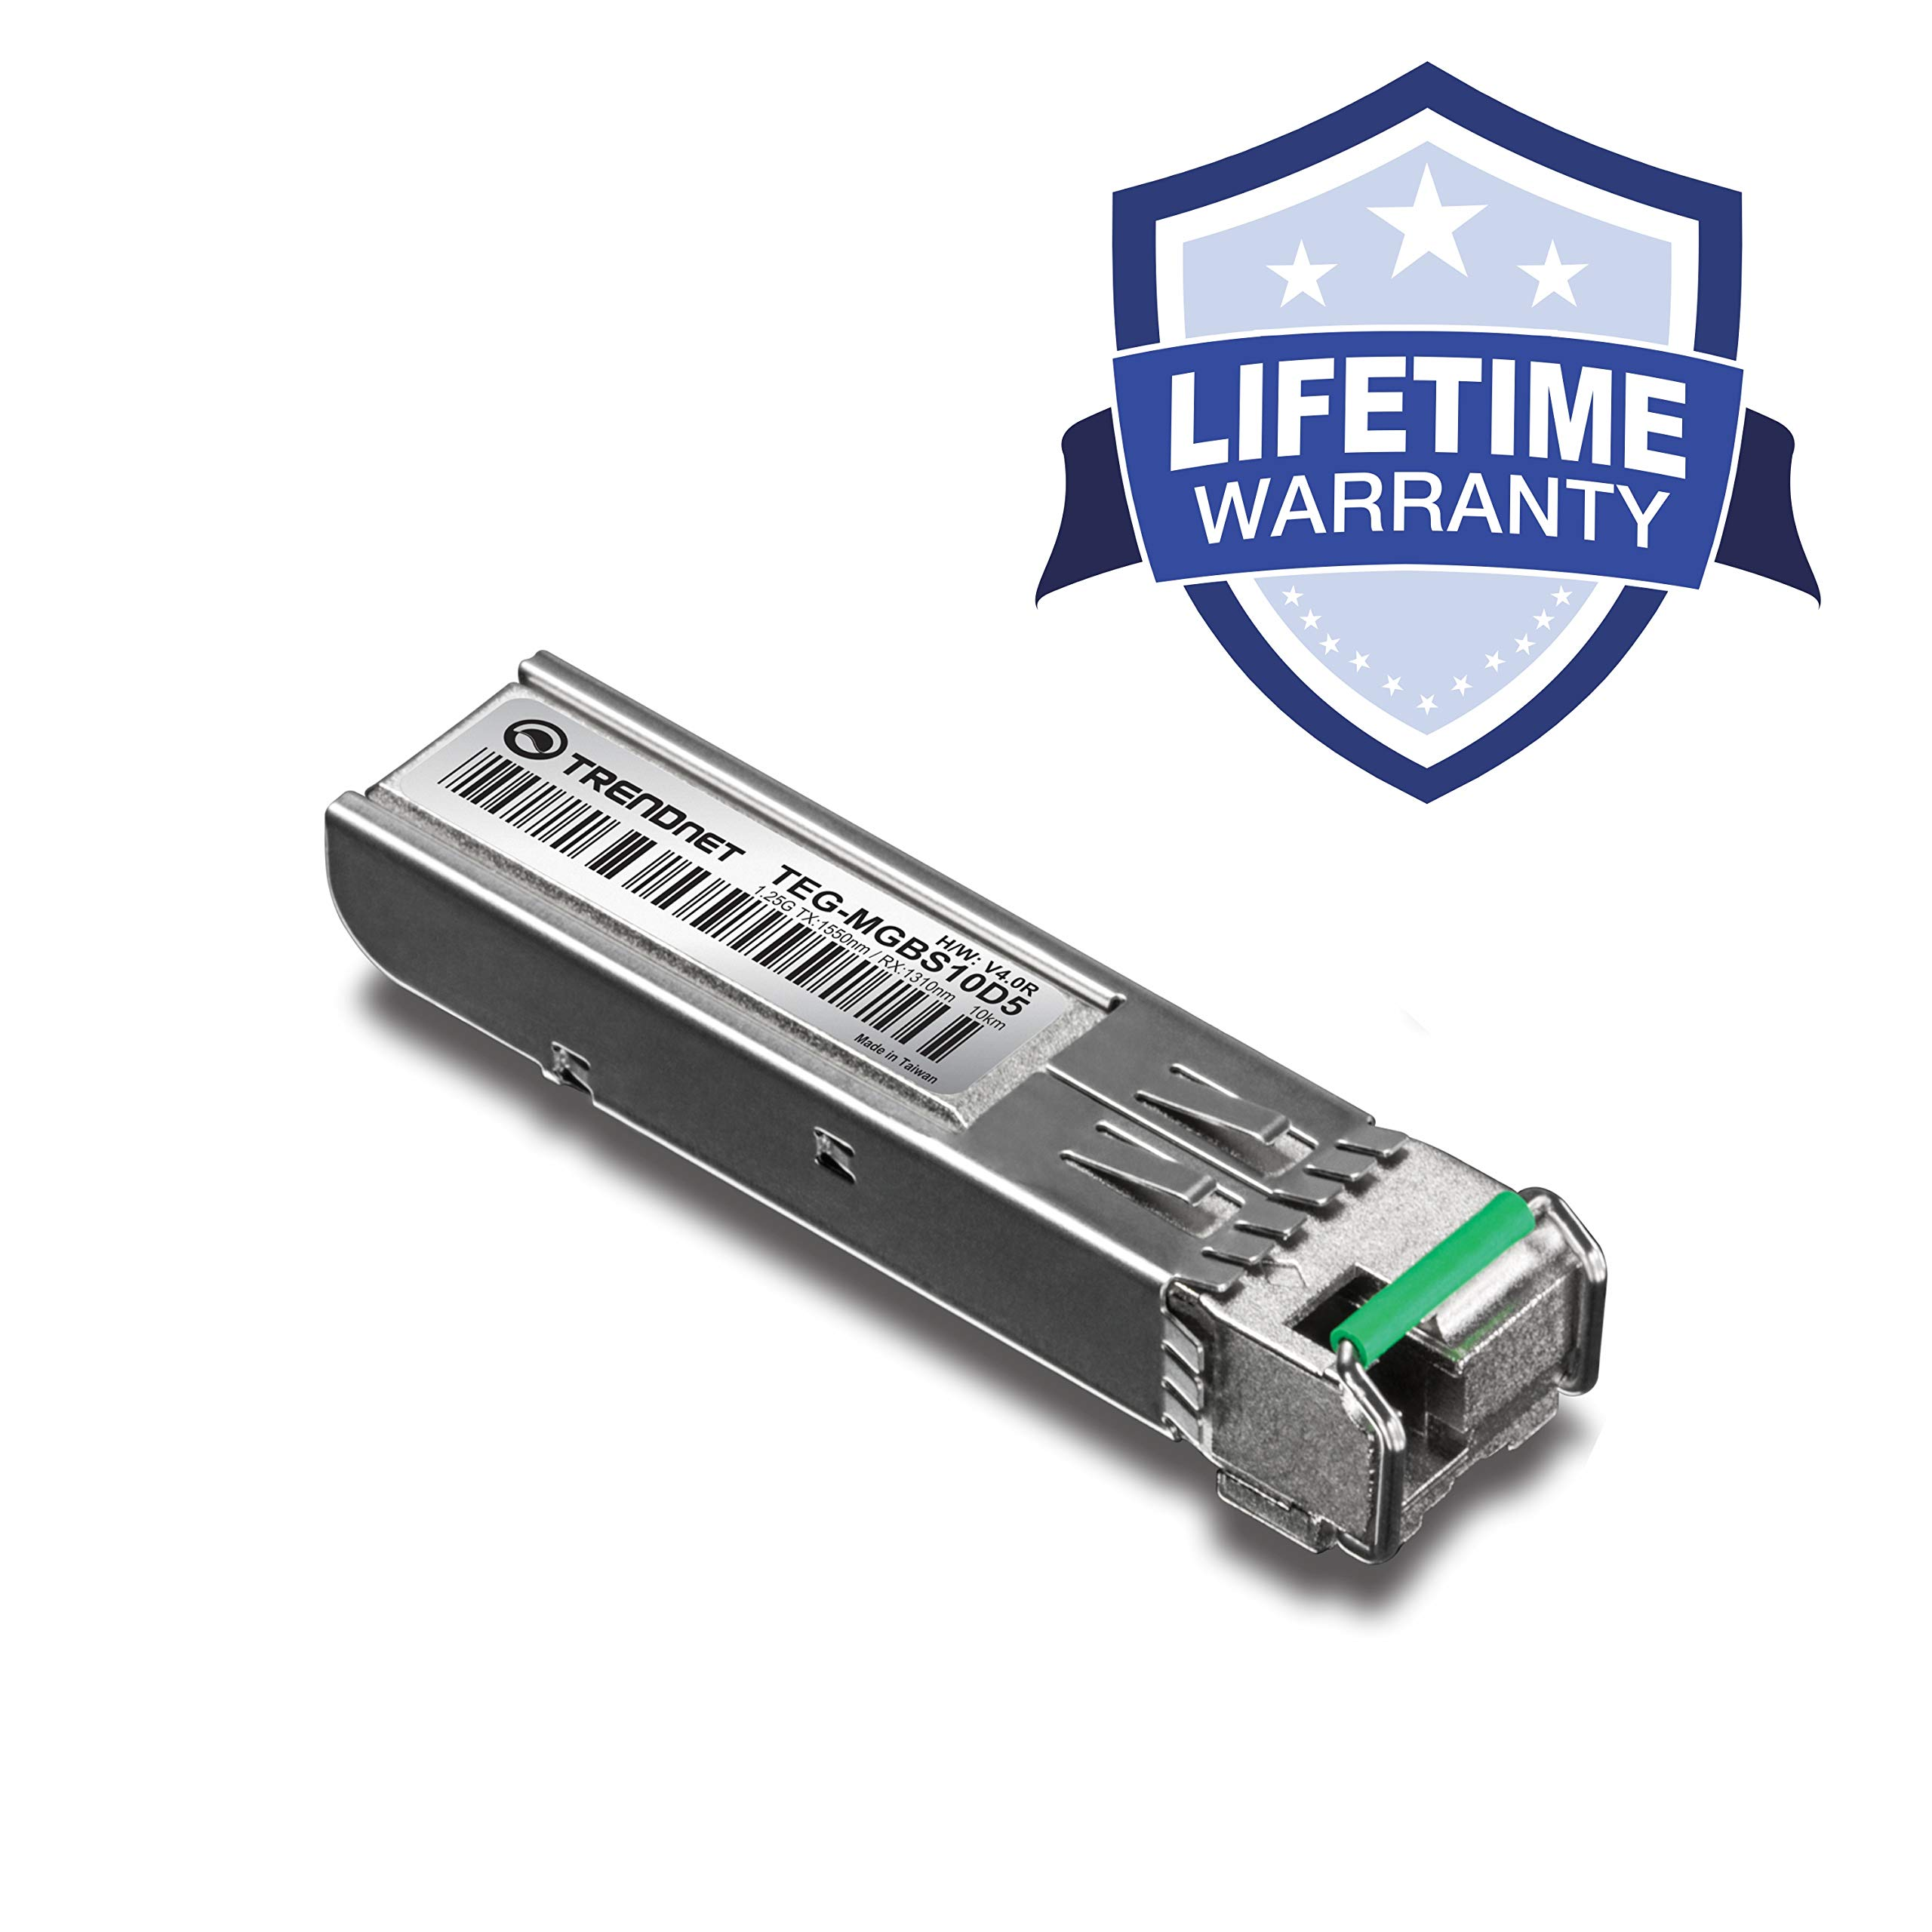 TRENDnet SFP Dual Wavelength Single-Mode LC Module, Up to 10 km (6.2 Miles), Must Pair with TEG-MGBS10D3 or other compatible module, Lifetime Protection, TEG-MGBS10D5